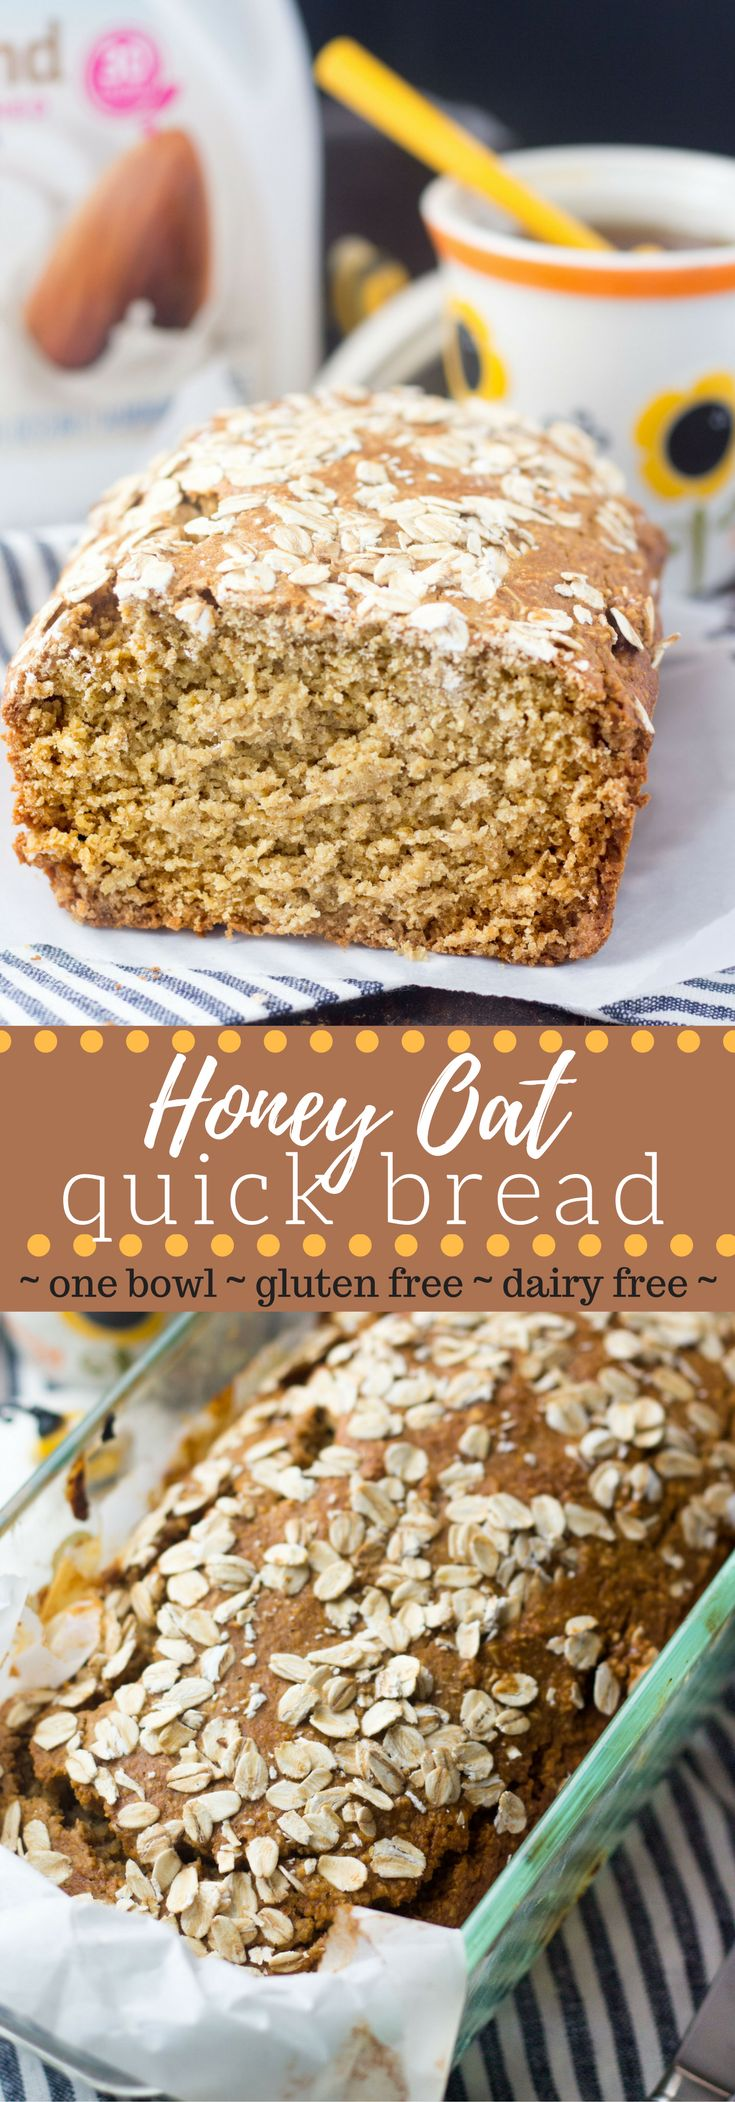 This gluten free honey oat bread is made with just a few simple ingredients in only one bowl!  No refined flour (oat flour only), butter or dairy! #AD #PlantBasedGoodness via @hungryhobby